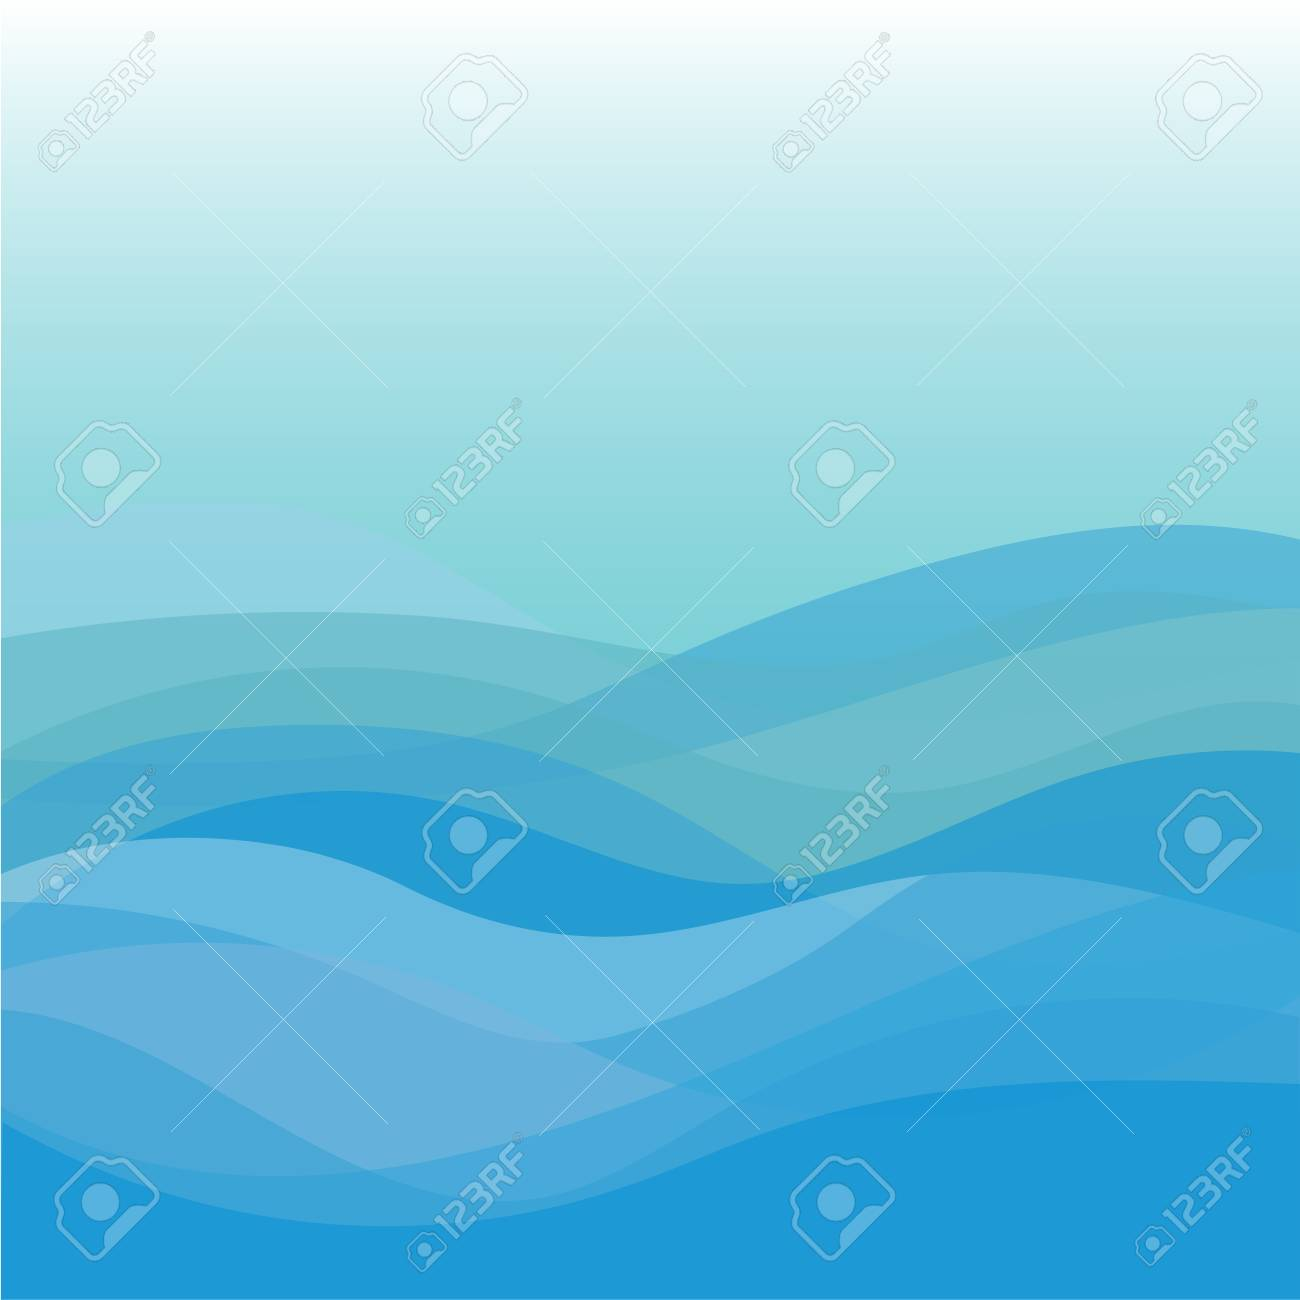 Blue wave vector abstract background flat design - 124970925